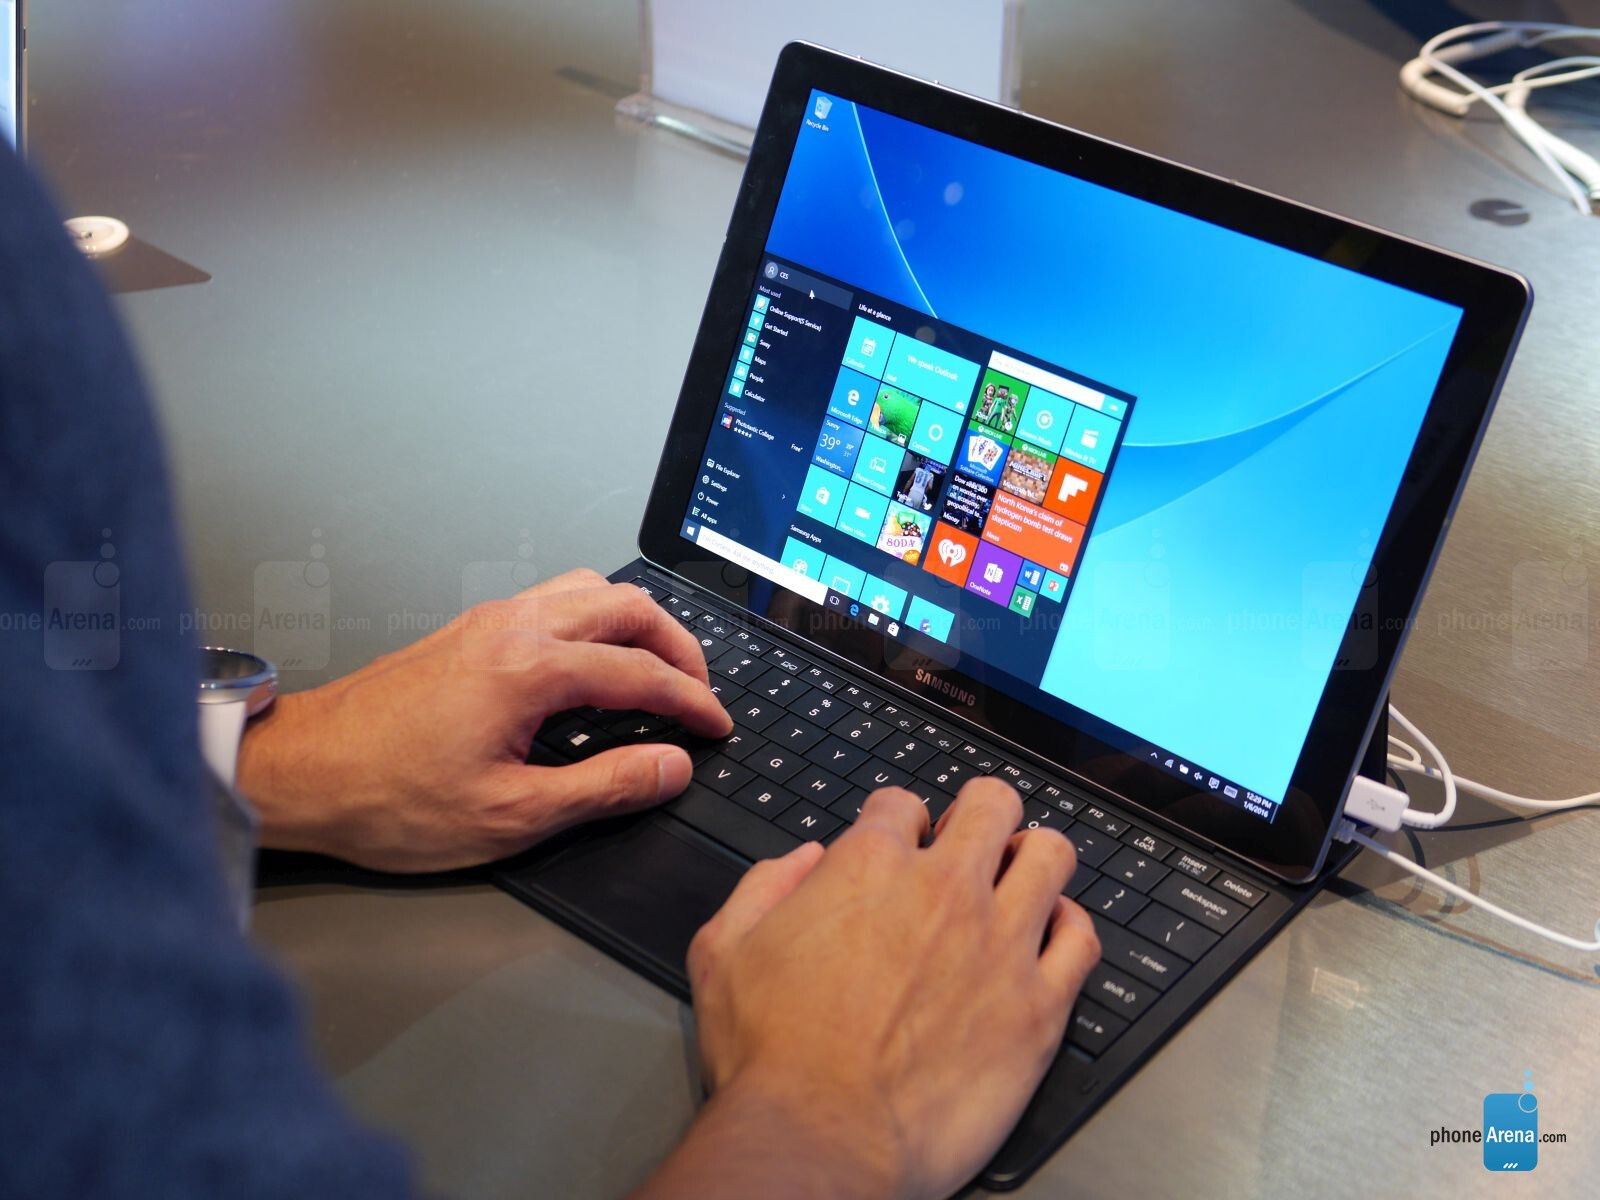 samsung galaxy tabpro s hands on a surface  petitor